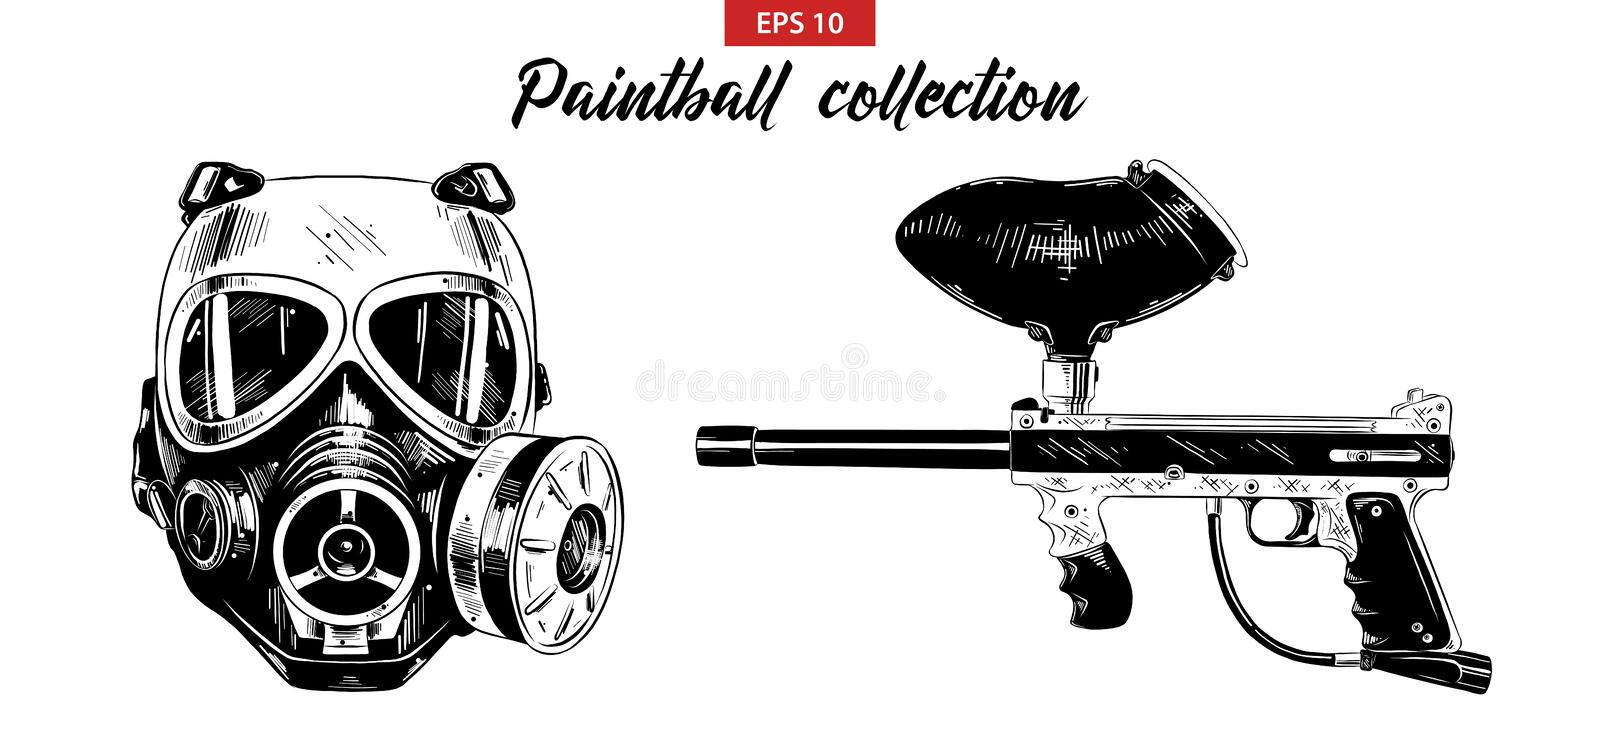 Hand drawn sketch set of paintball gun and mask isolated on white background. Detailed vintage etching drawing. Vector engraved illustration for posters stock illustration